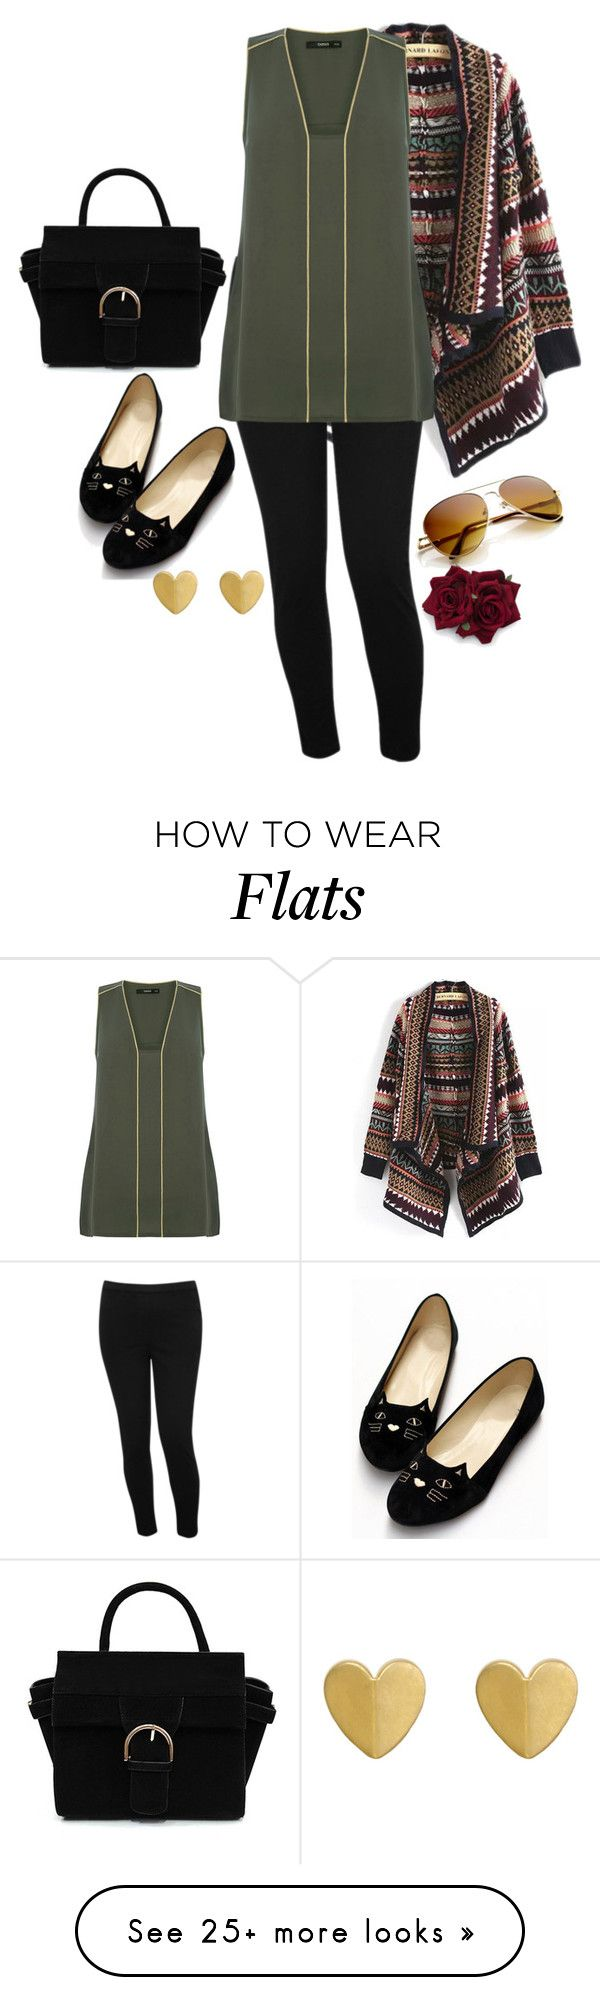 """""""Untitled #1856"""" by kitten89 on Polyvore featuring M&Co and Oasis"""